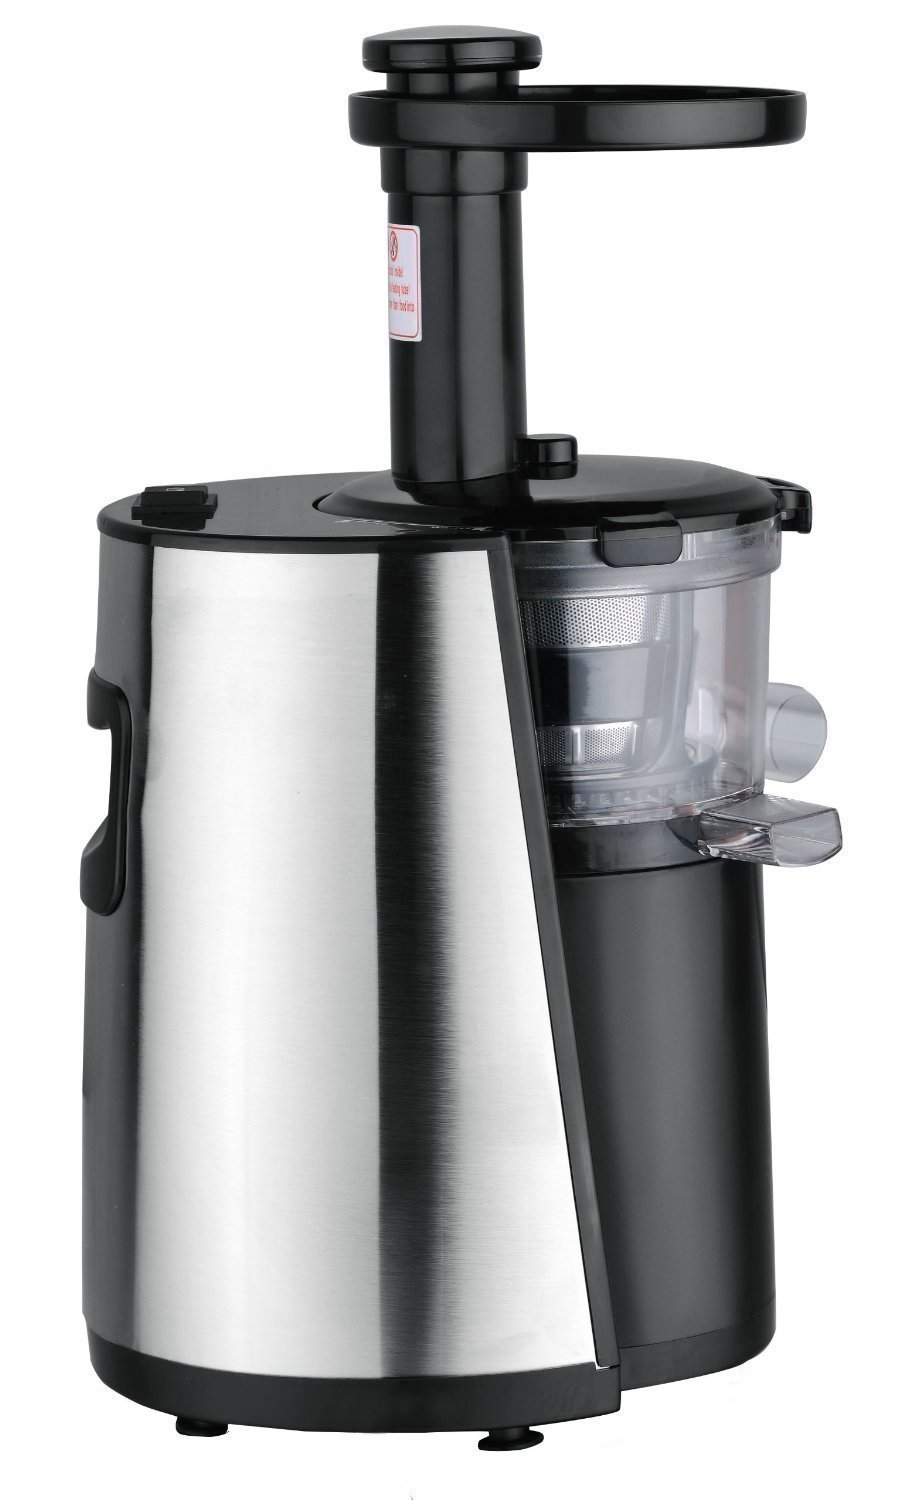 Top 10 Best Masticating Juicers 2018 Review